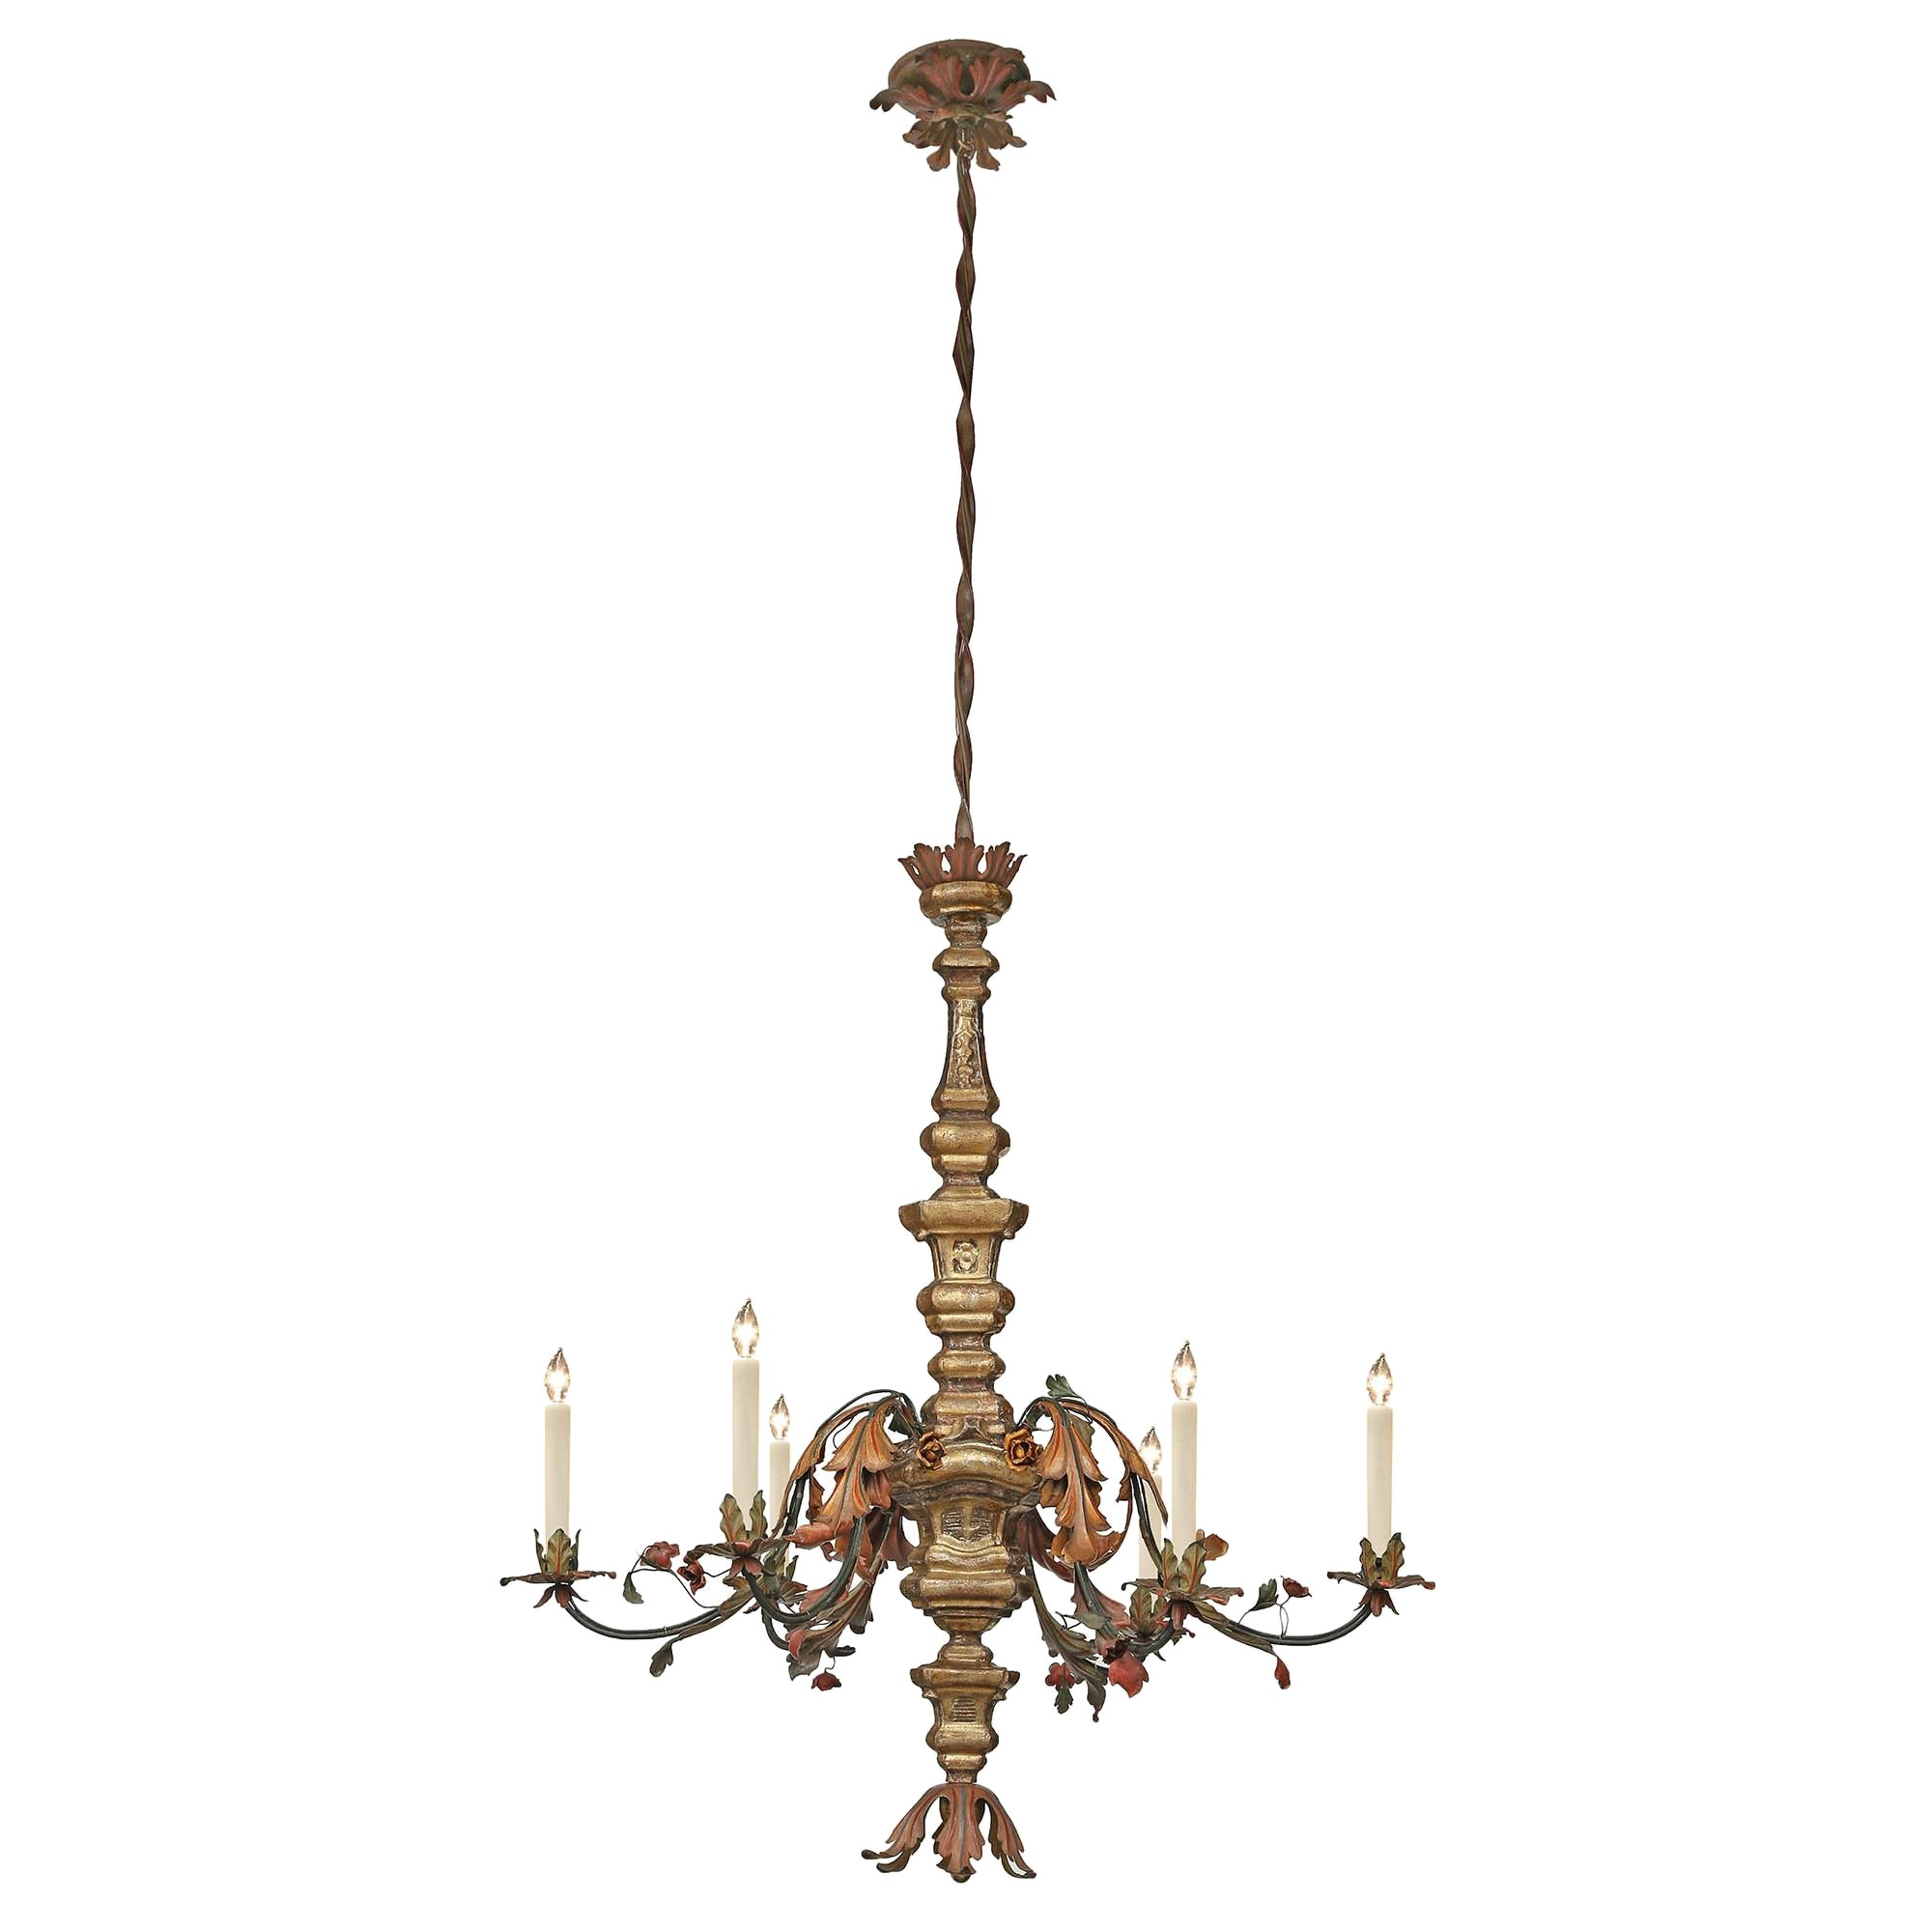 Italian Early 19th Century Mecca and Hand Painted Pressed Metal Chandelier